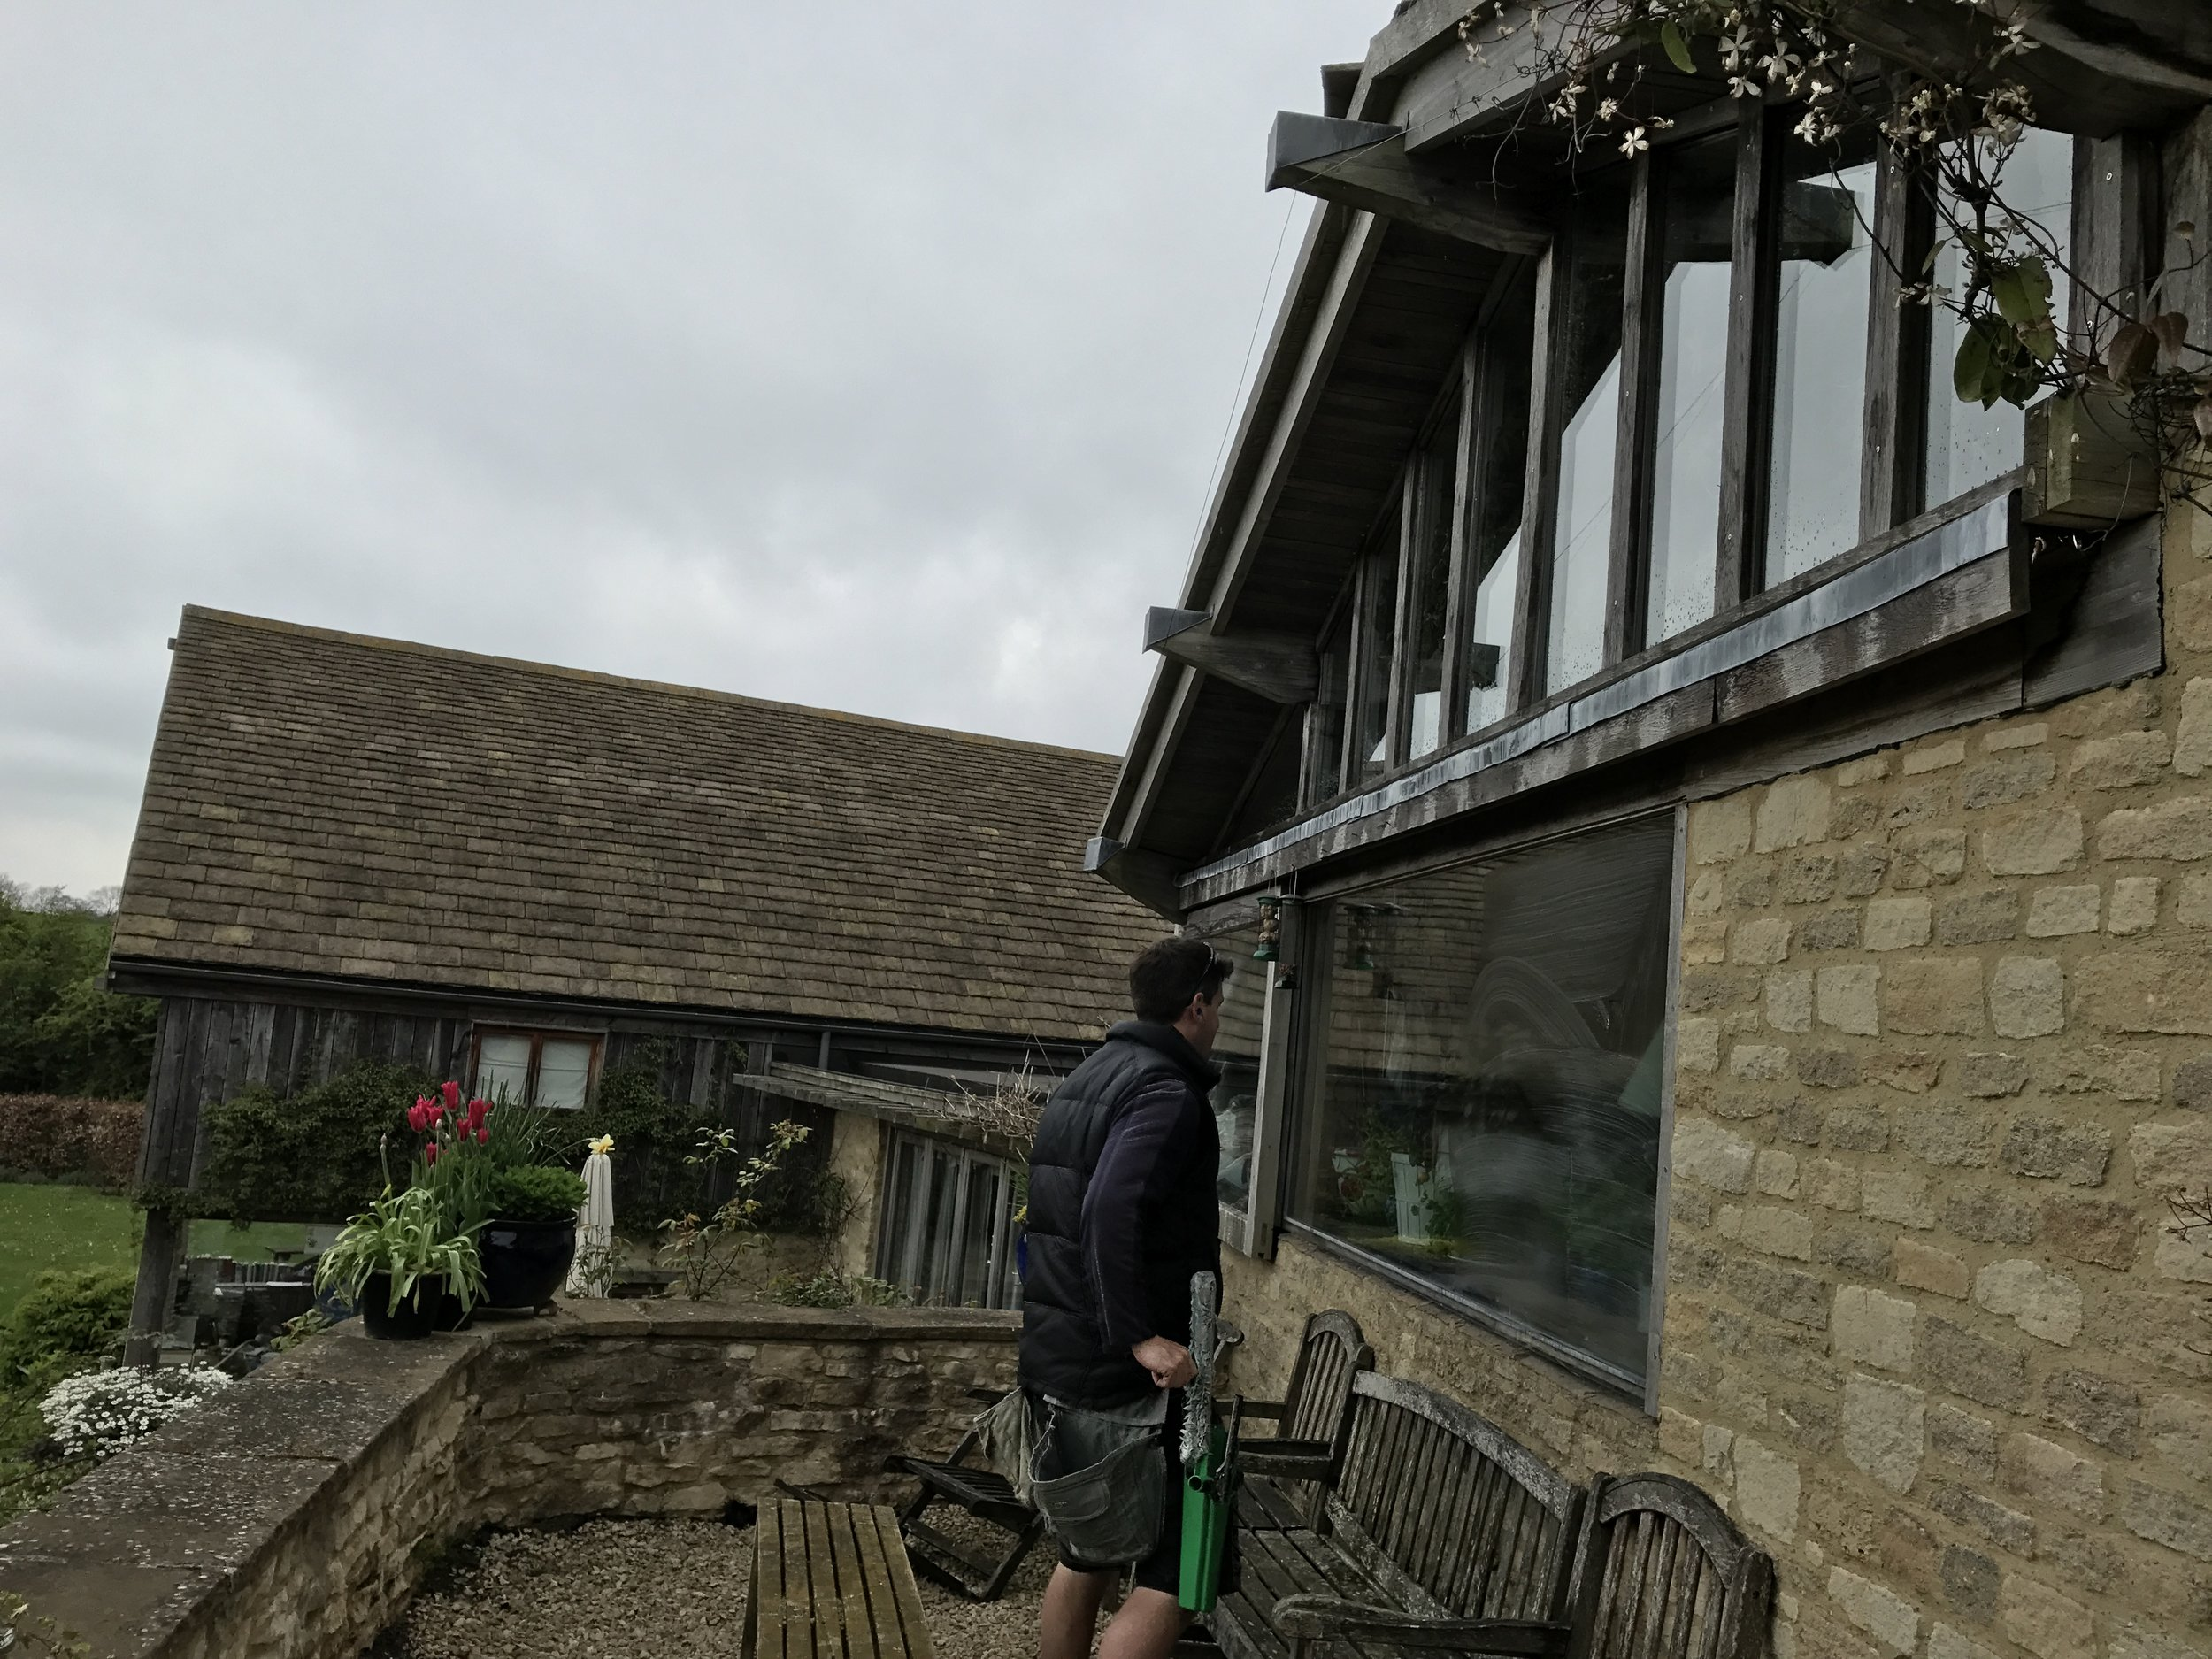 A variety of windows to clean